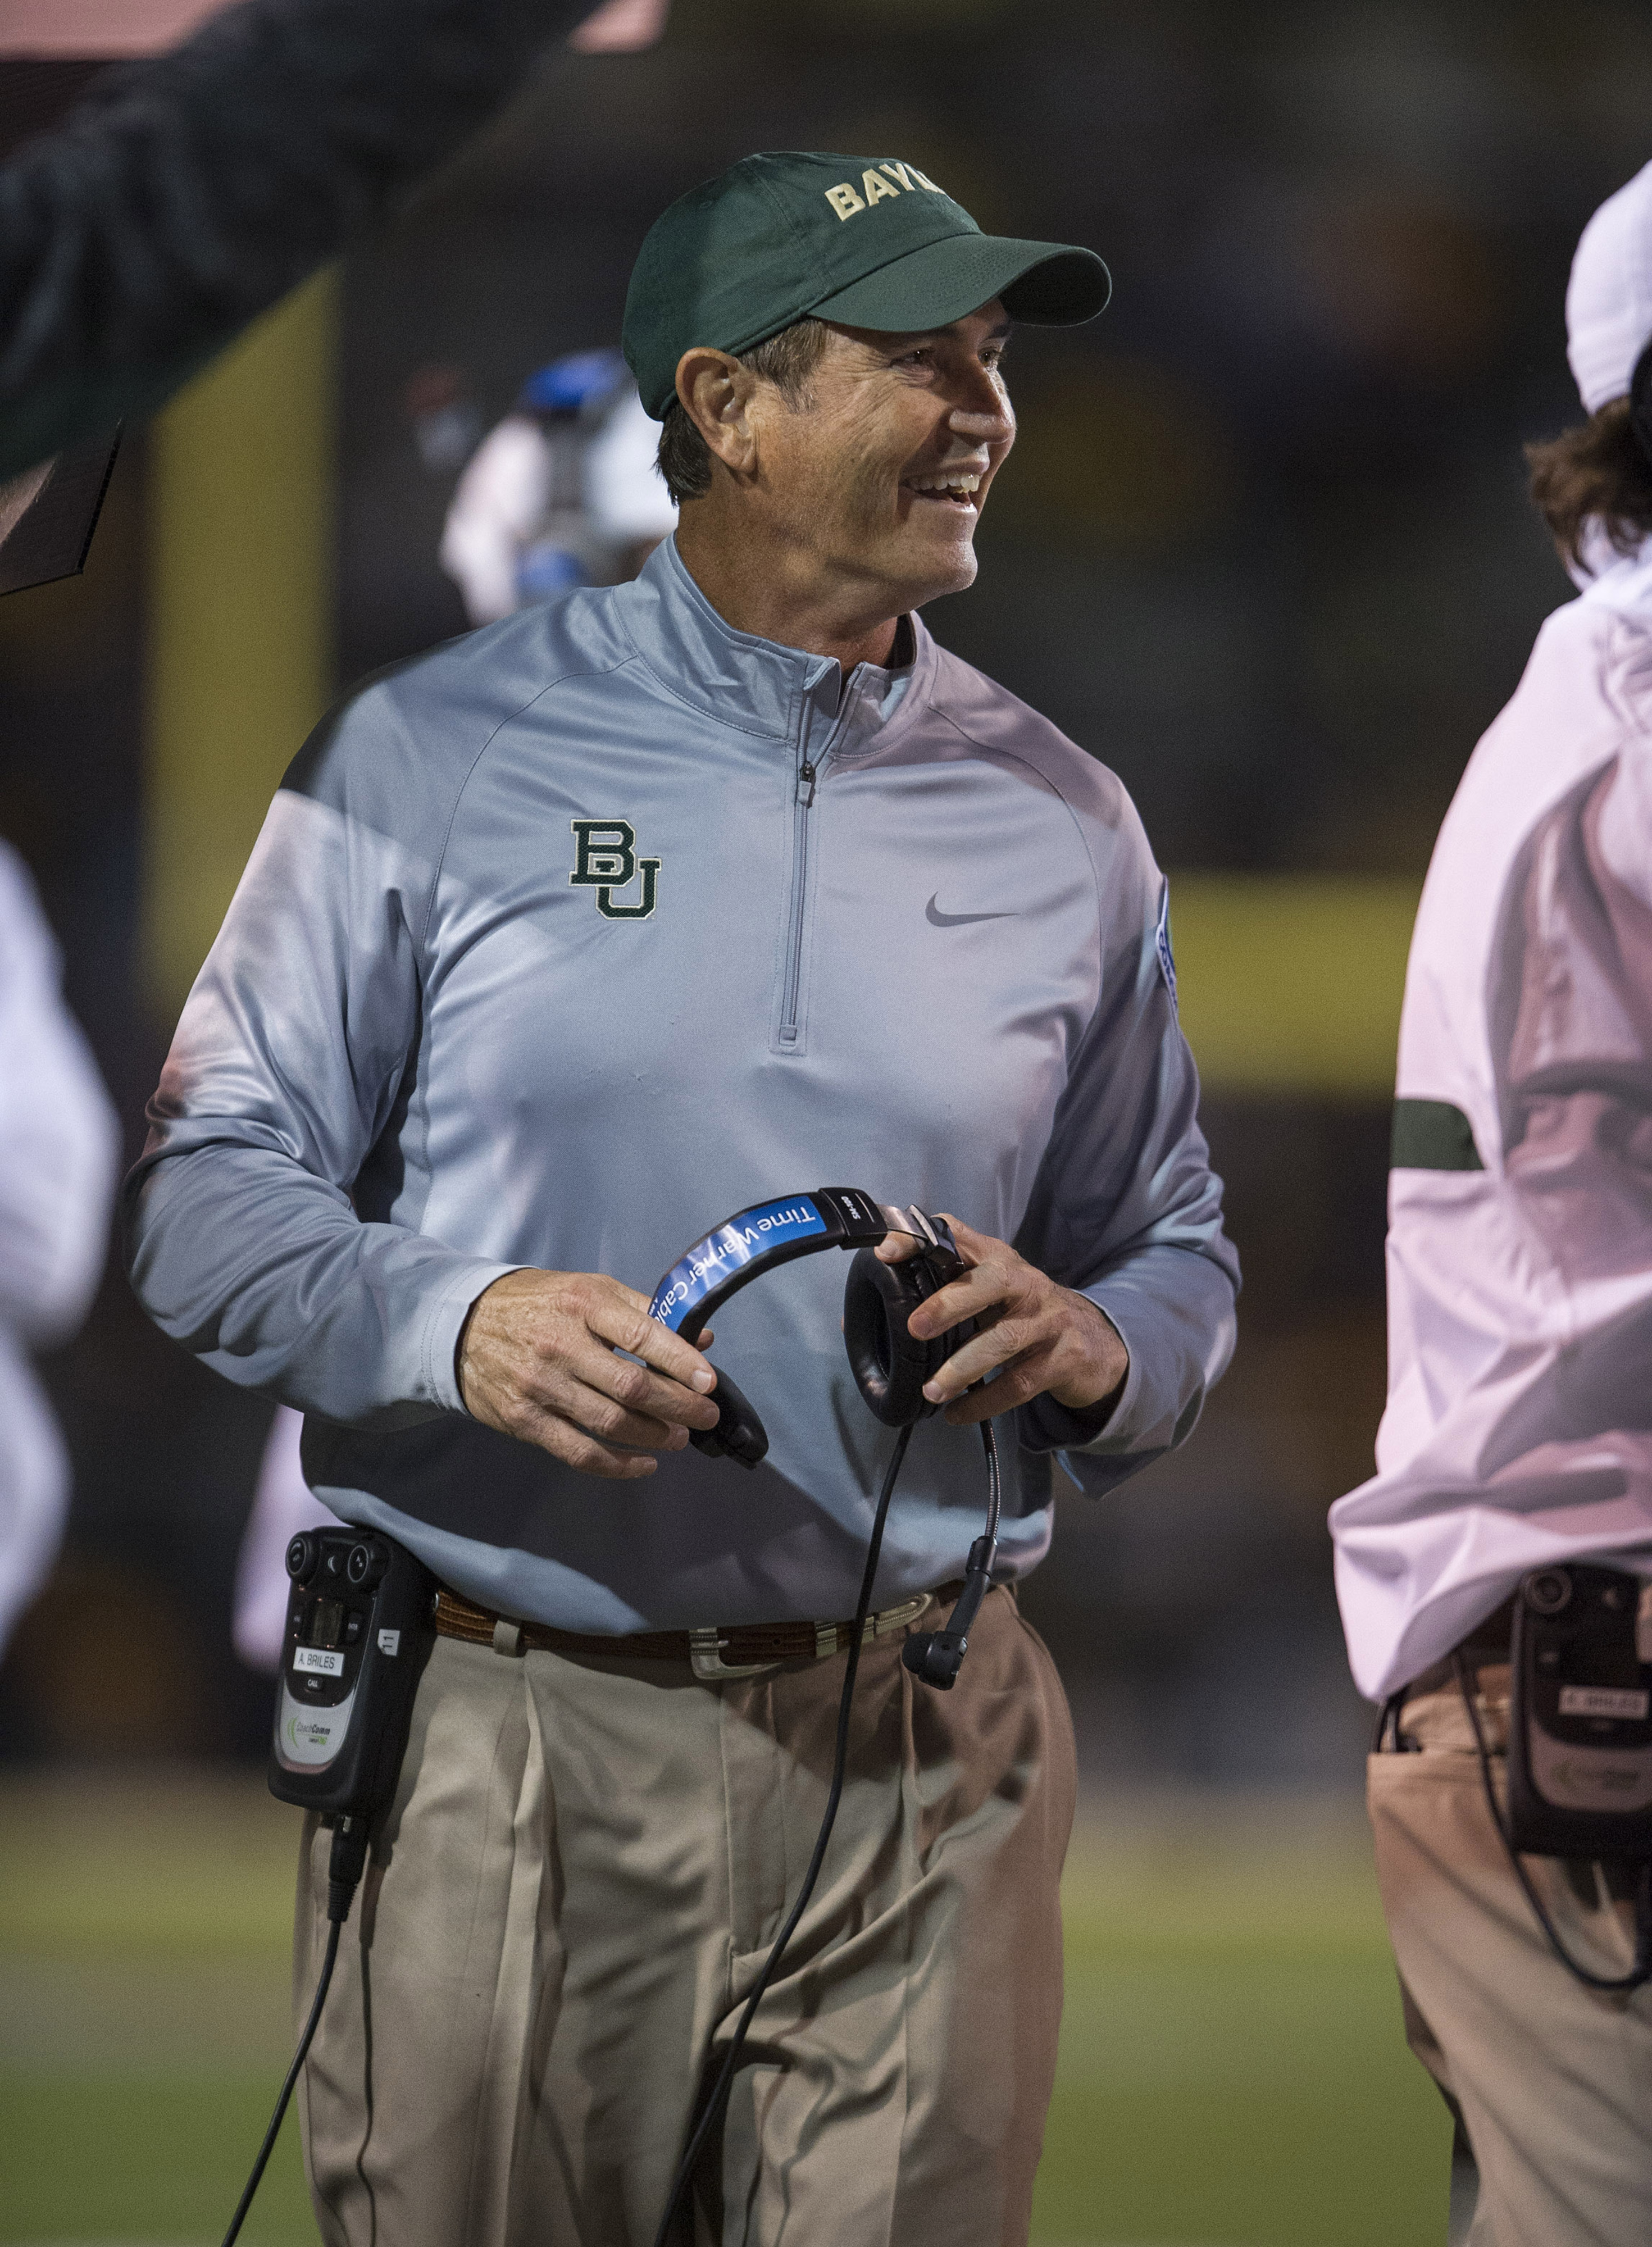 You know why Art Briles is happy? Because it's podcast time. That's why.